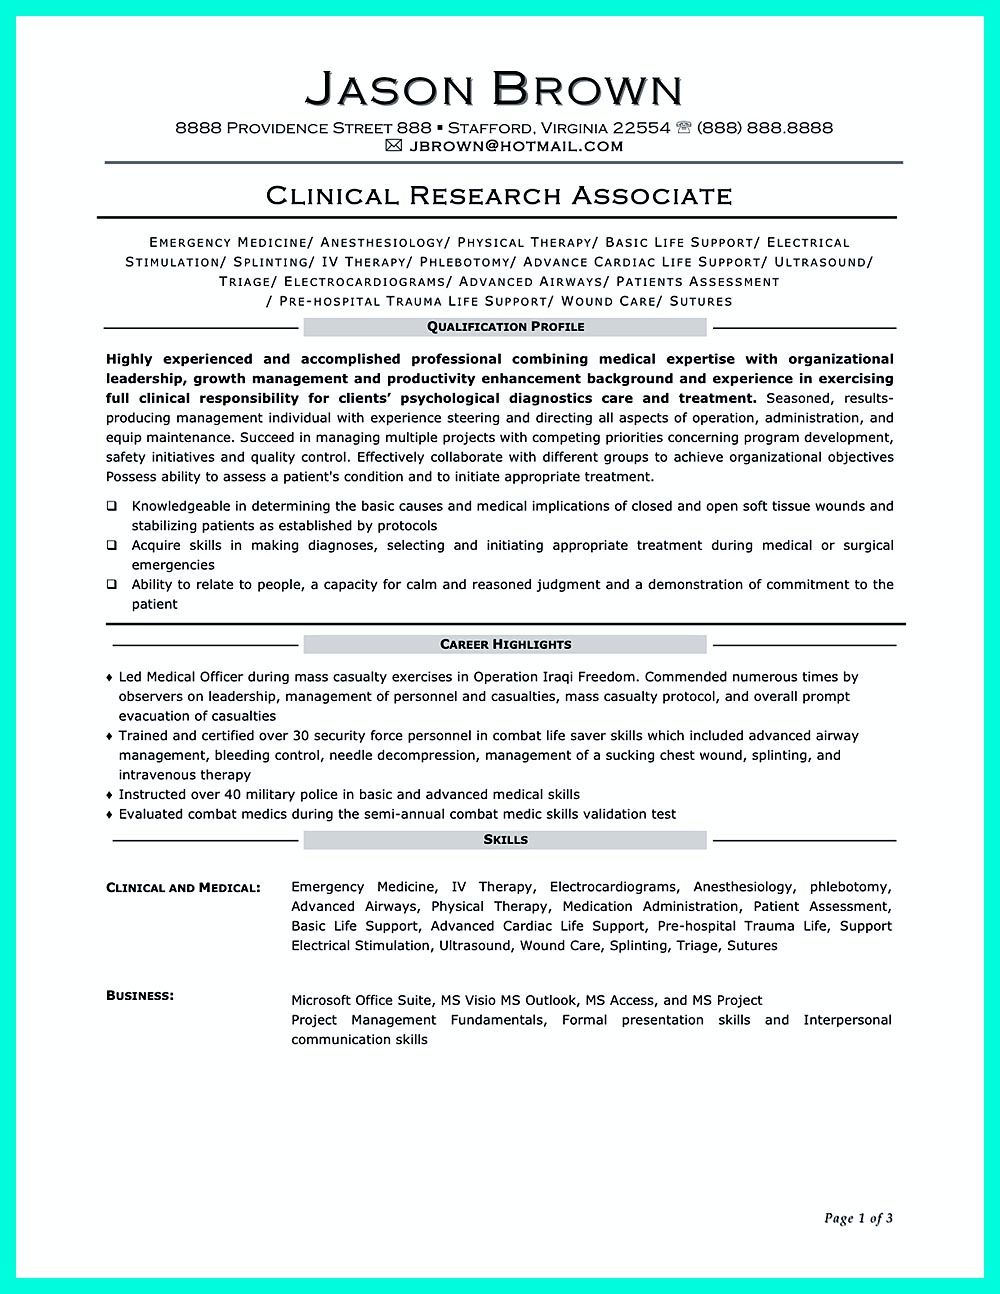 cover letter for clinical research associate Cover letter sample research associate sample cover letter clinical project manager sample cover letter resume genius sample resume clinical research associate resume sle graduate archival processing assistant cover letter open cover letters jfc cz as resume for research assistant cover letter research.